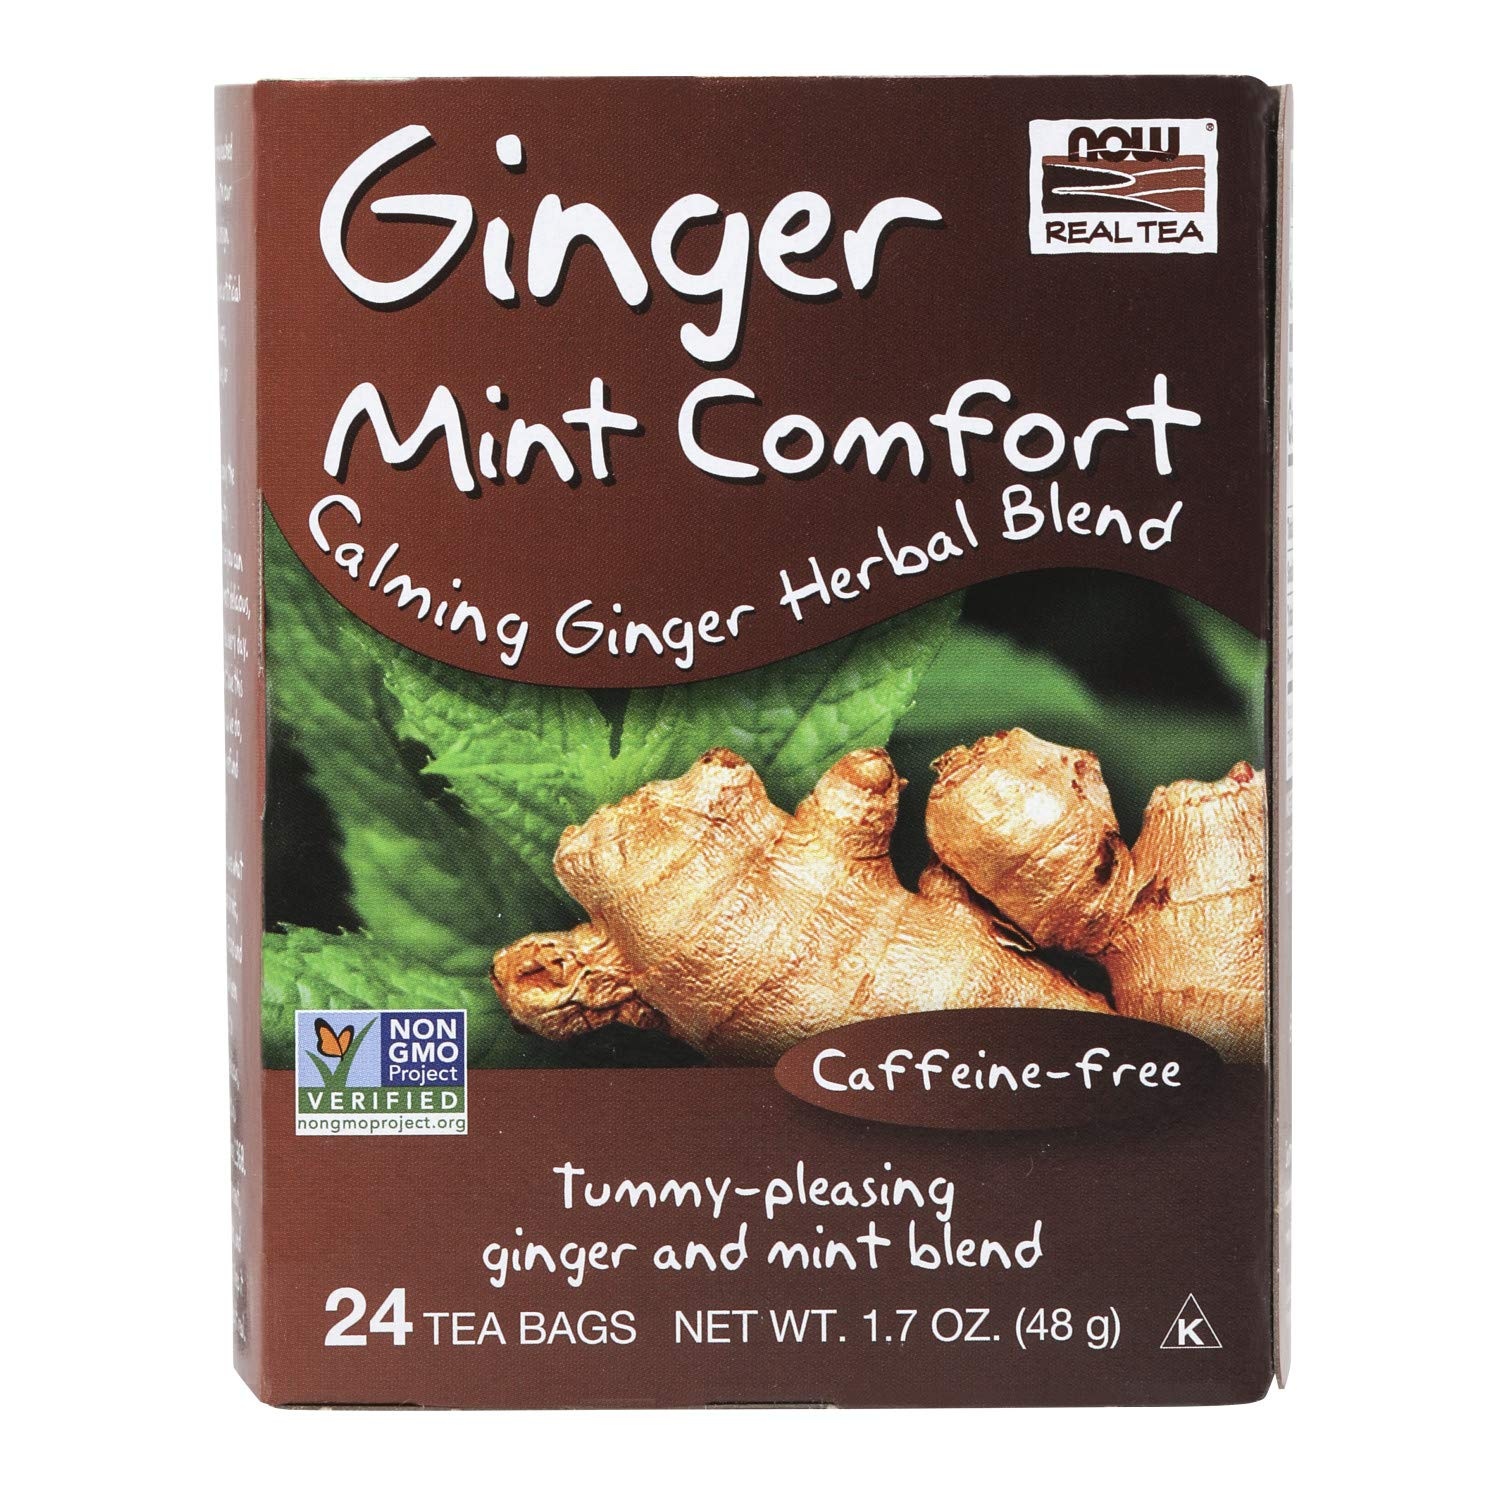 NOW Foods, Ginger Mint Comfort Tea, Calming and Tummy-Pleasing Ginger-Mint Herbal Blend, Caffeine-Free, Non-GMO, Premium Unbleached Tea Bags with No-Staples Design, 24-Count